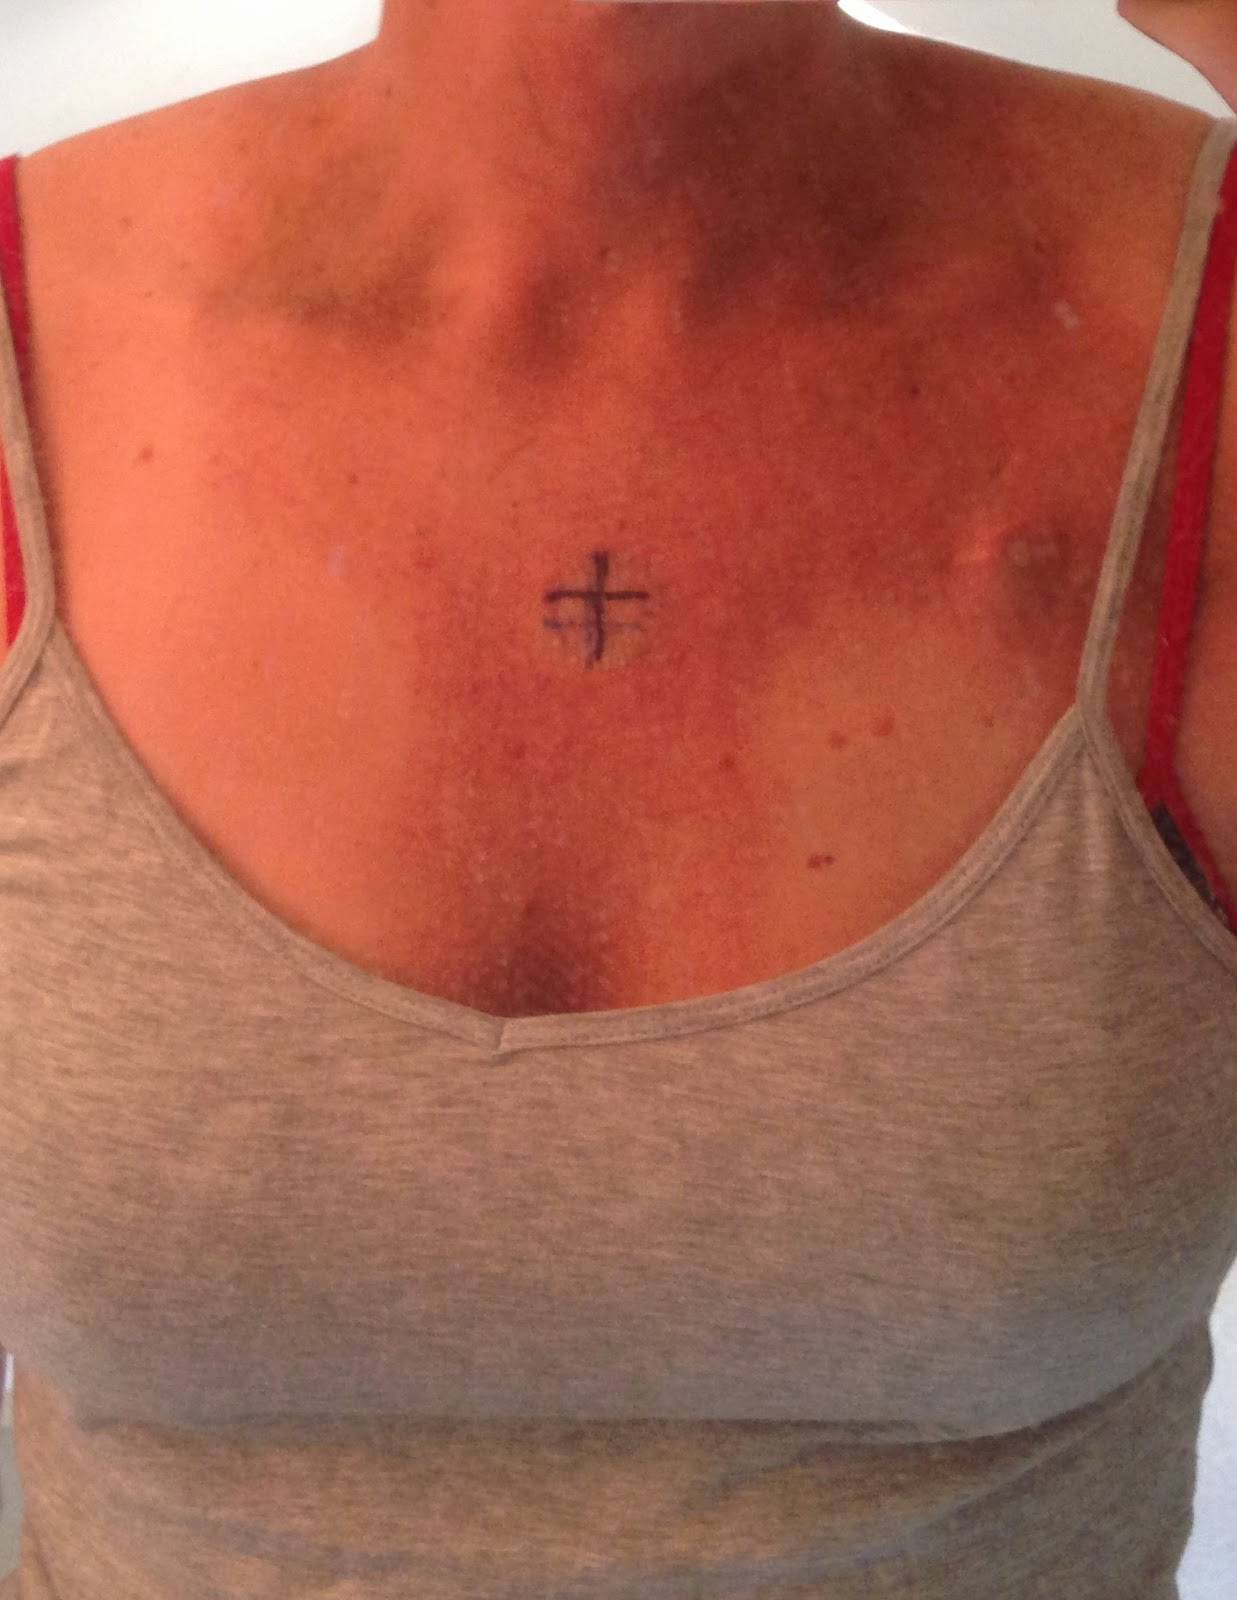 Displaying 19 gt  Images For - Thyroid Cancer Scar Jewelry   Thyroid Cancer Scar Jewelry